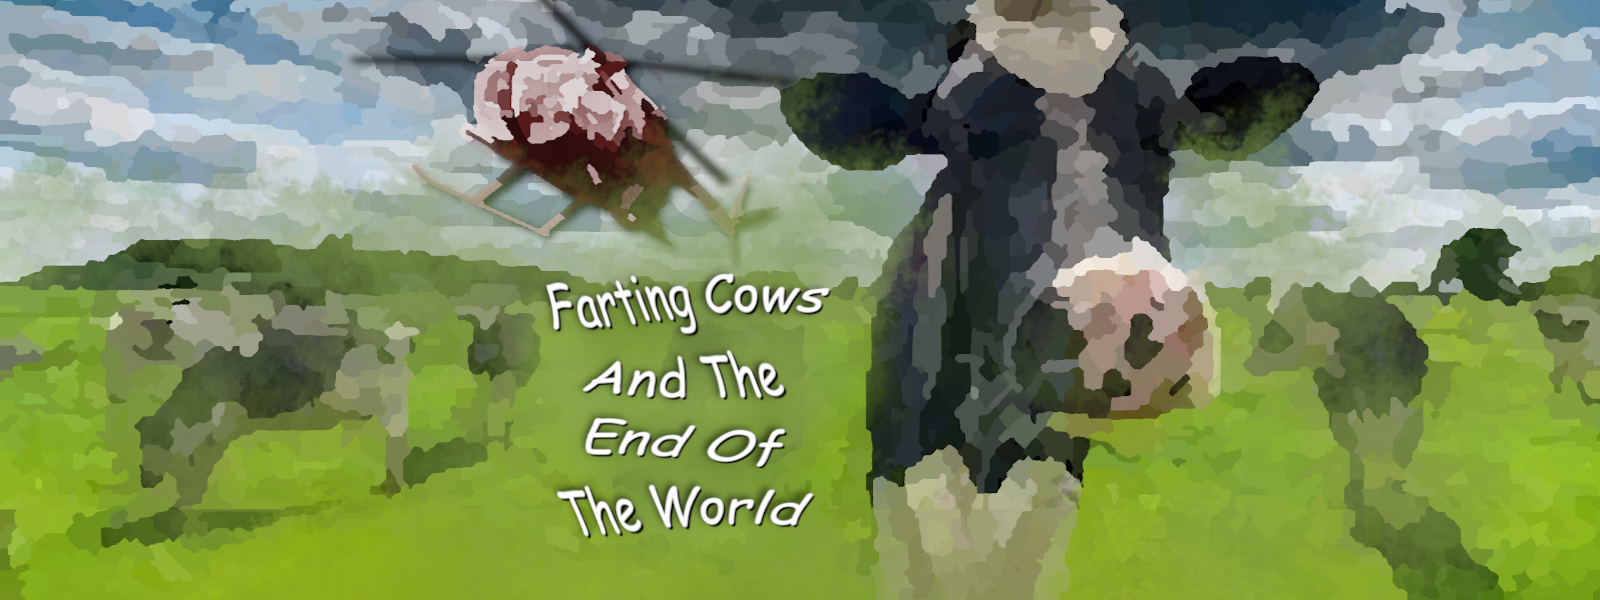 Farting Cows Cover Art